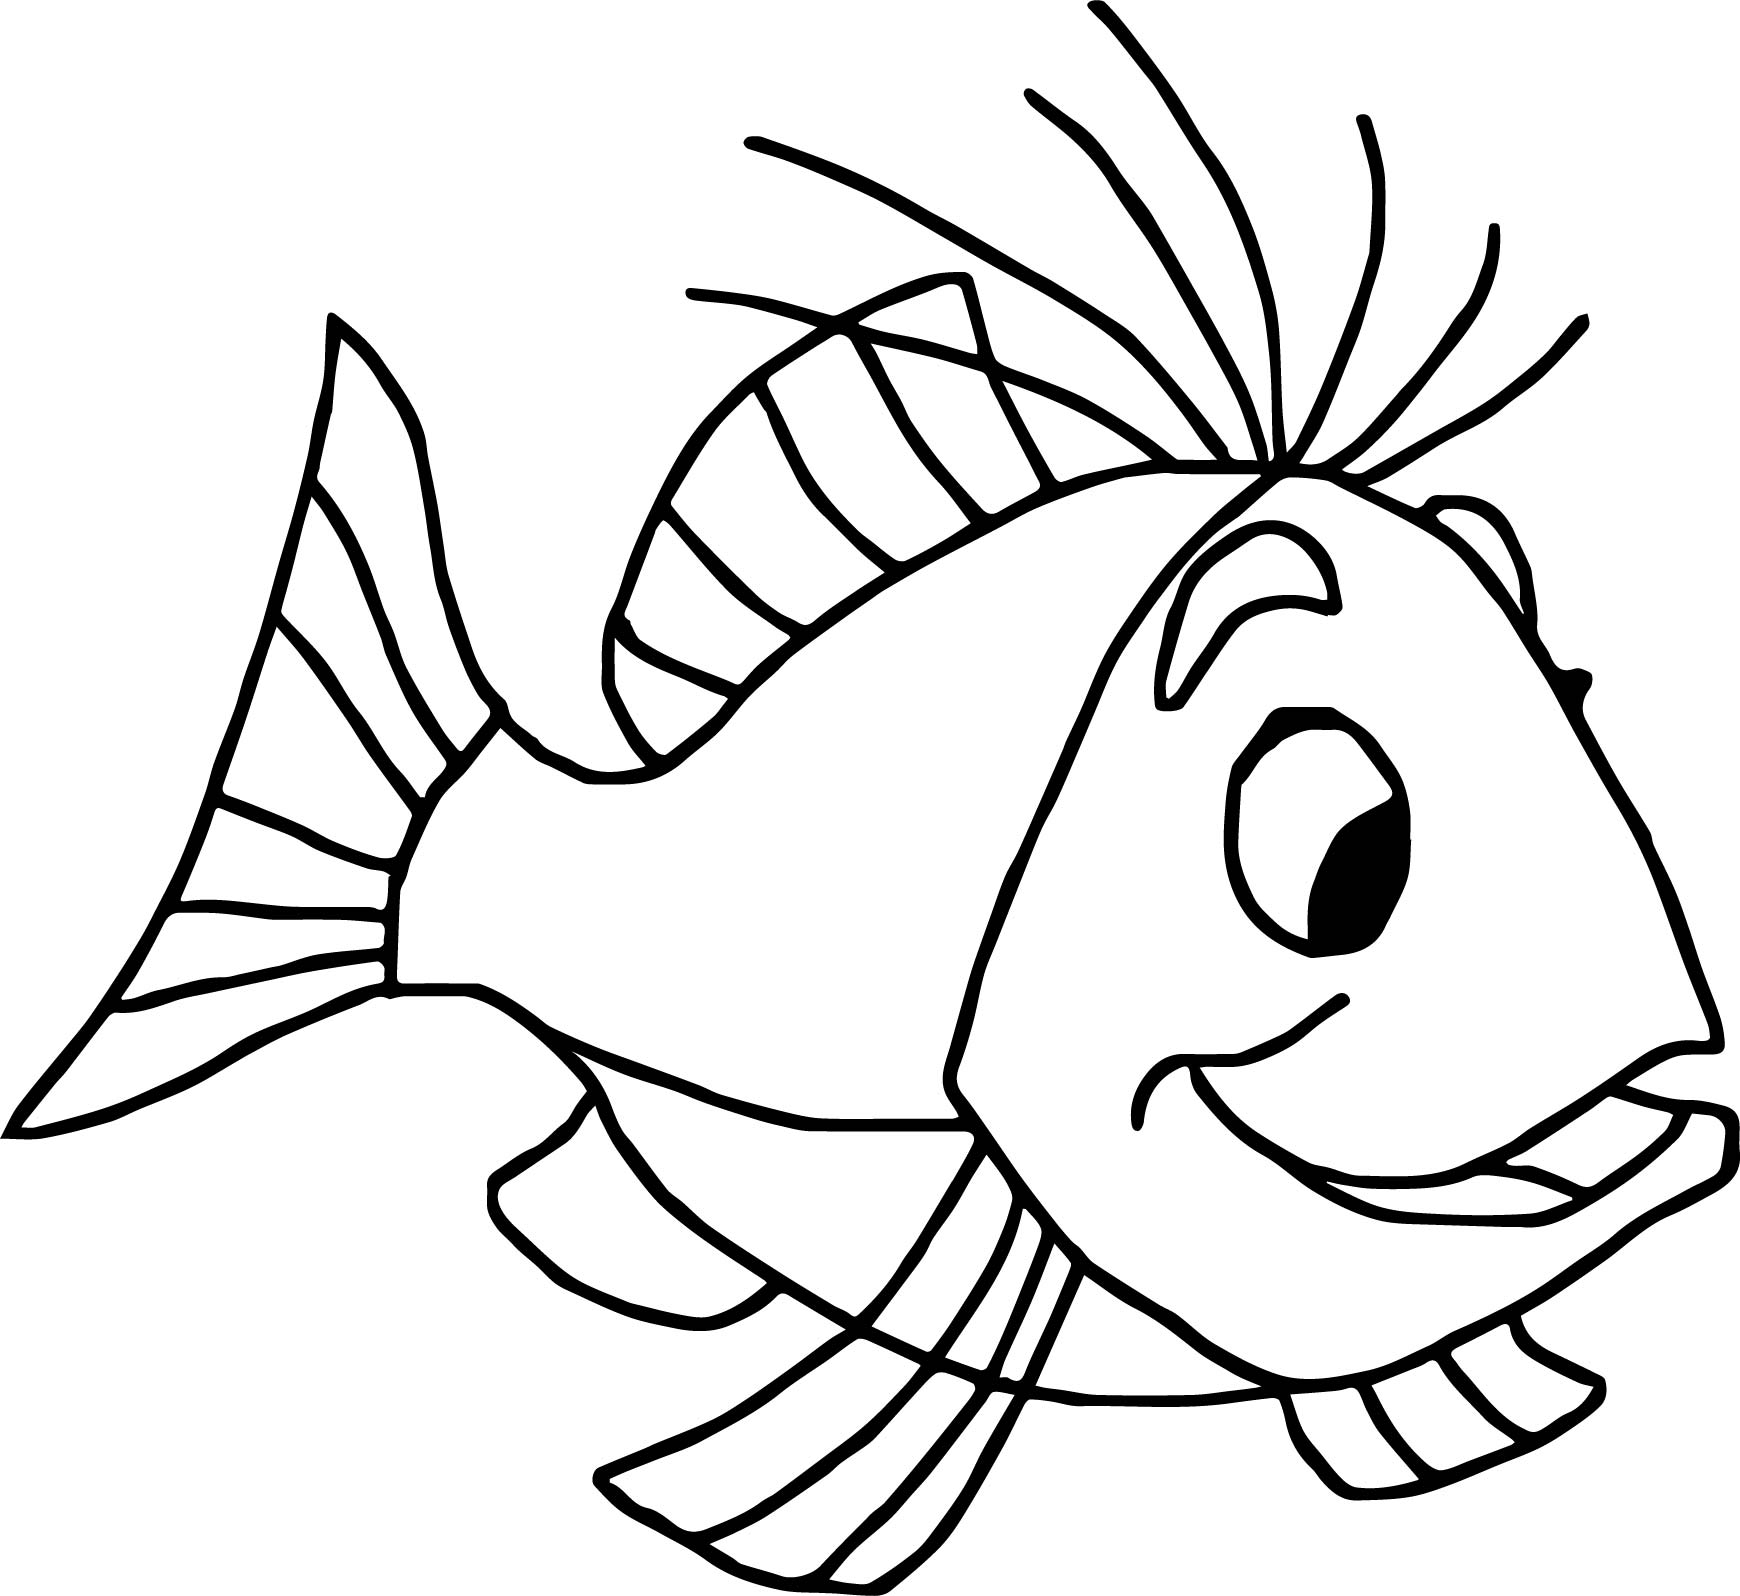 1740x1596 Swordin Stone Fish Coloring Page Wecoloringpage